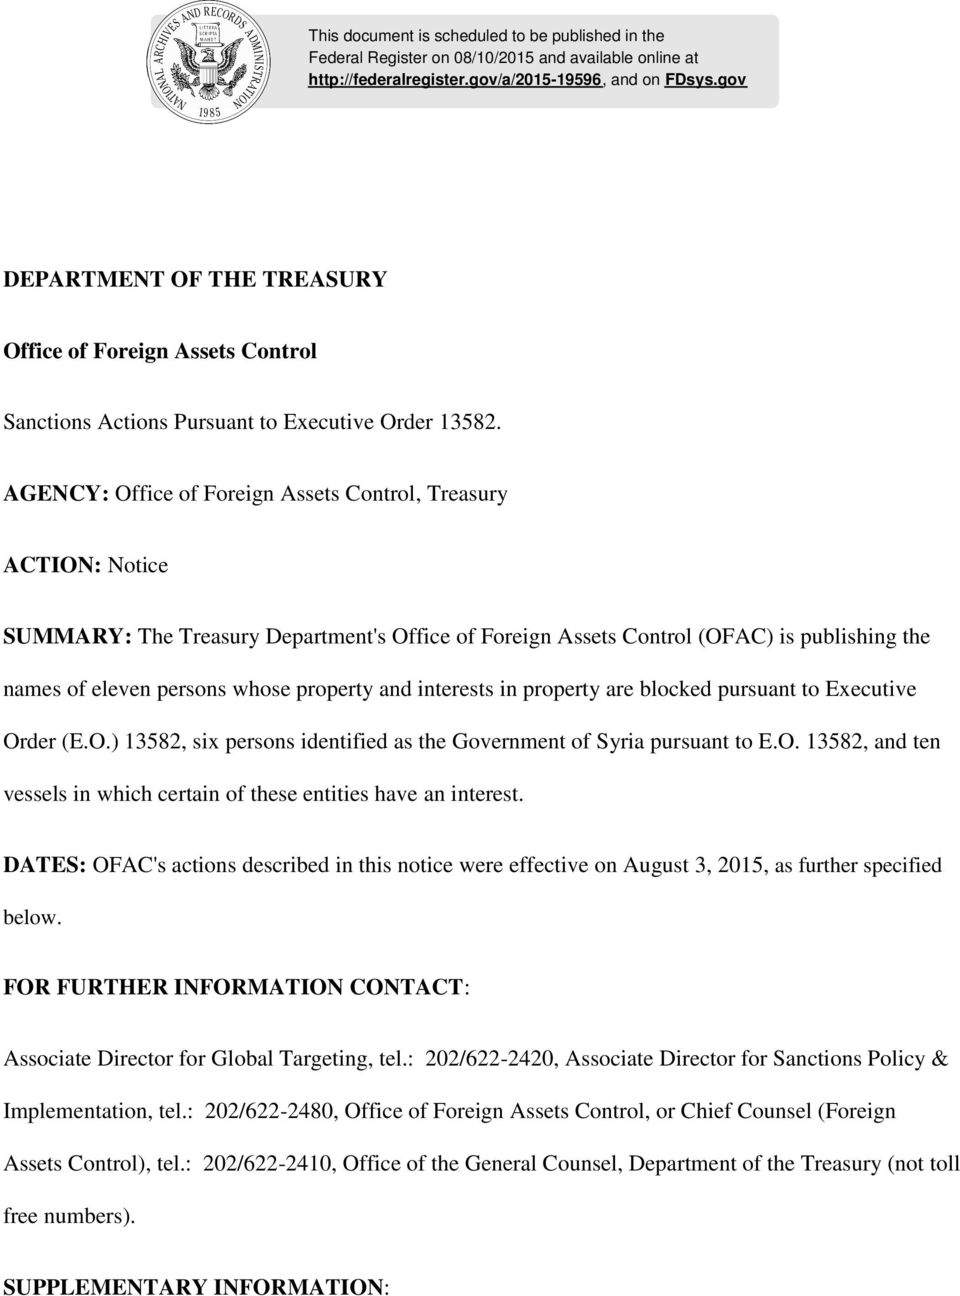 AGENCY: Office of Foreign Assets Control, Treasury ACTION: Notice SUMMARY: The Treasury Department's Office of Foreign Assets Control (OFAC) is publishing the names of eleven persons whose property